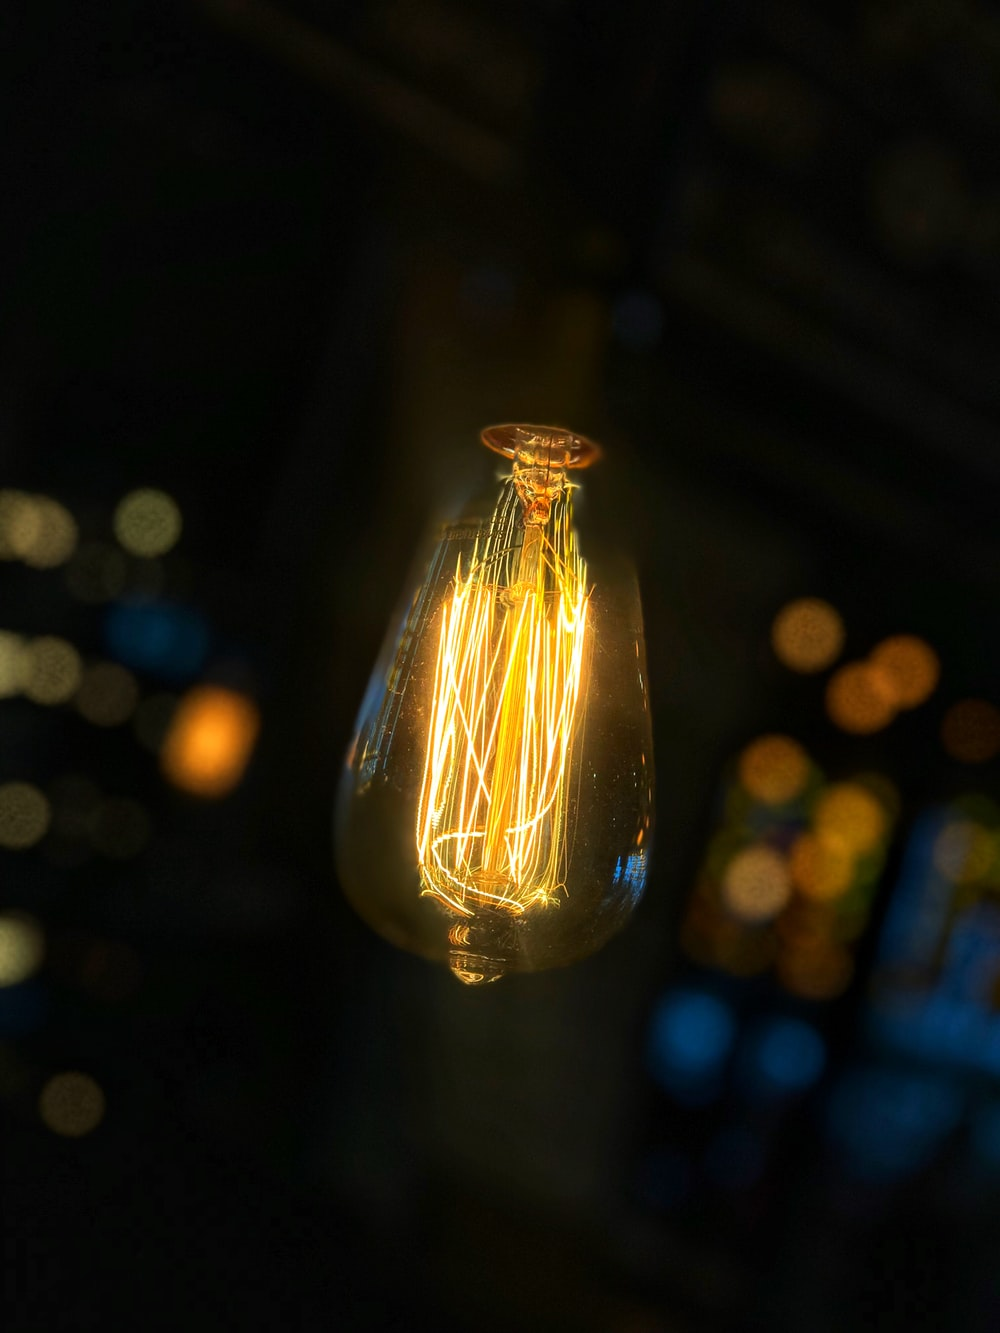 lighted incandescent bulb